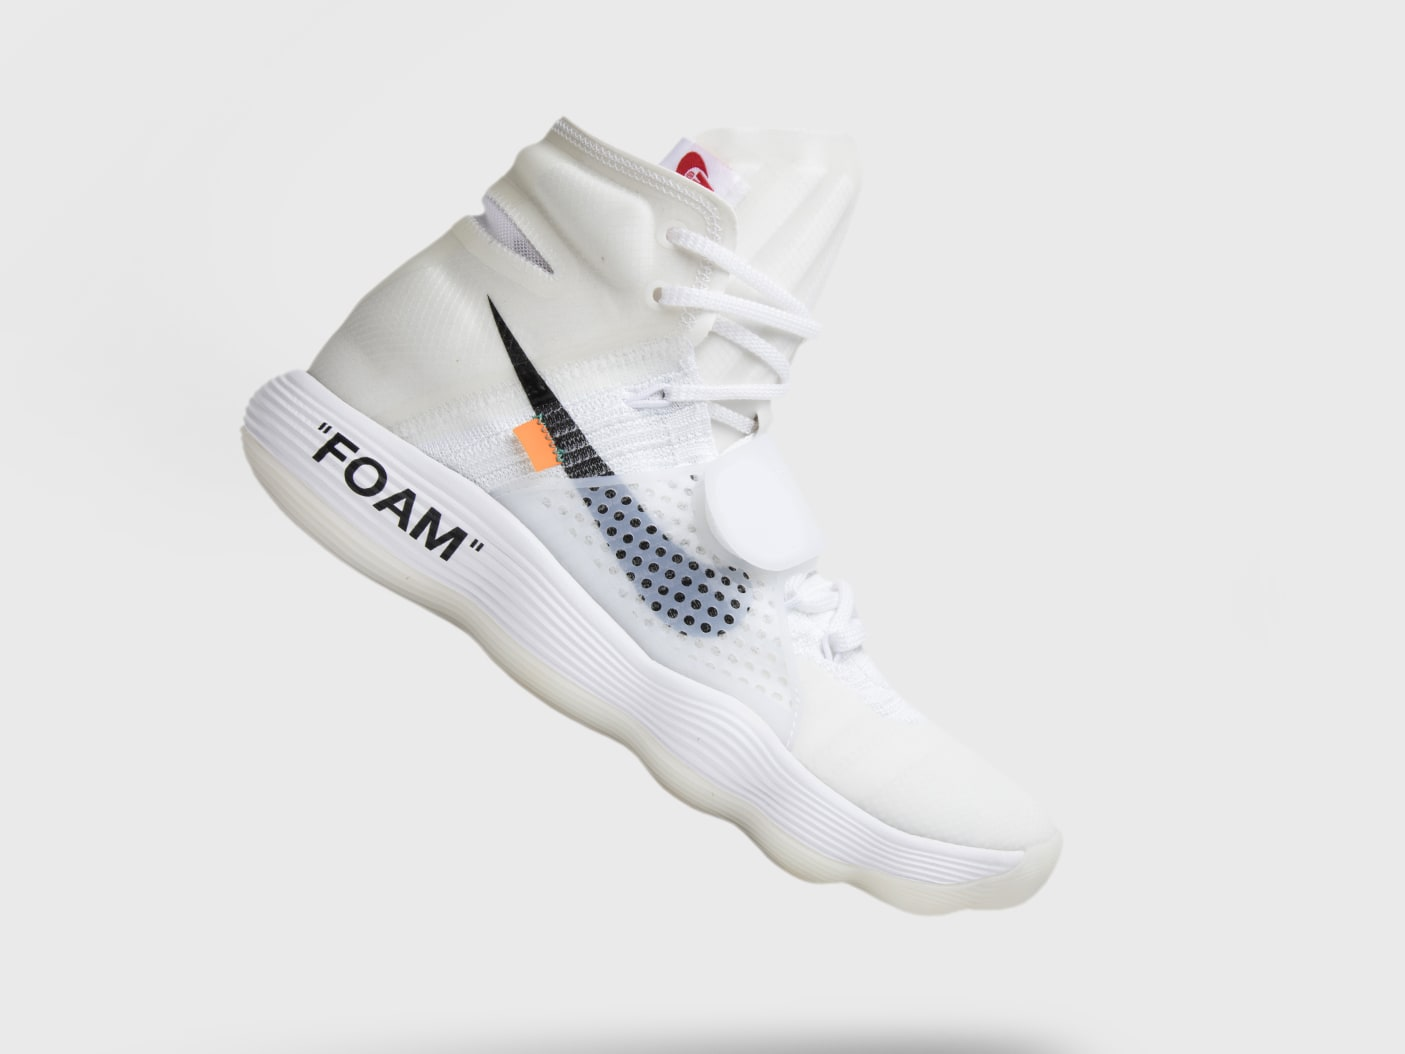 off-white x nike react hyperdunk 2017 'the ten'